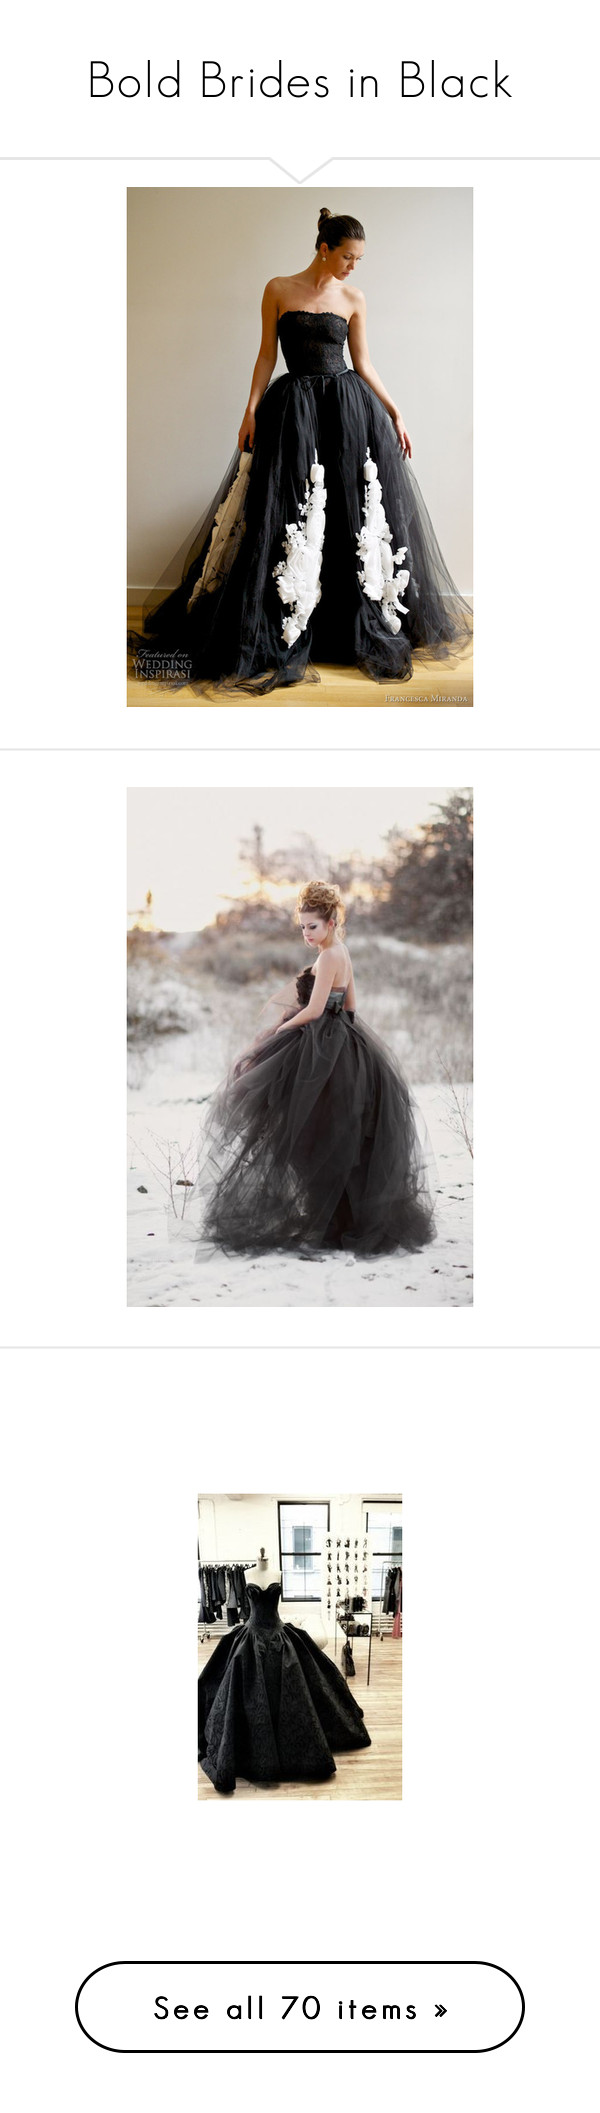 """""""Bold Brides in Black"""" by sunflower1999 ❤ liked on Polyvore featuring dresses, gowns, long dress, black special occasion dresses, holiday dresses, bridal dresses, long cocktail dresses, long black dress, gala dresses and black evening gowns"""